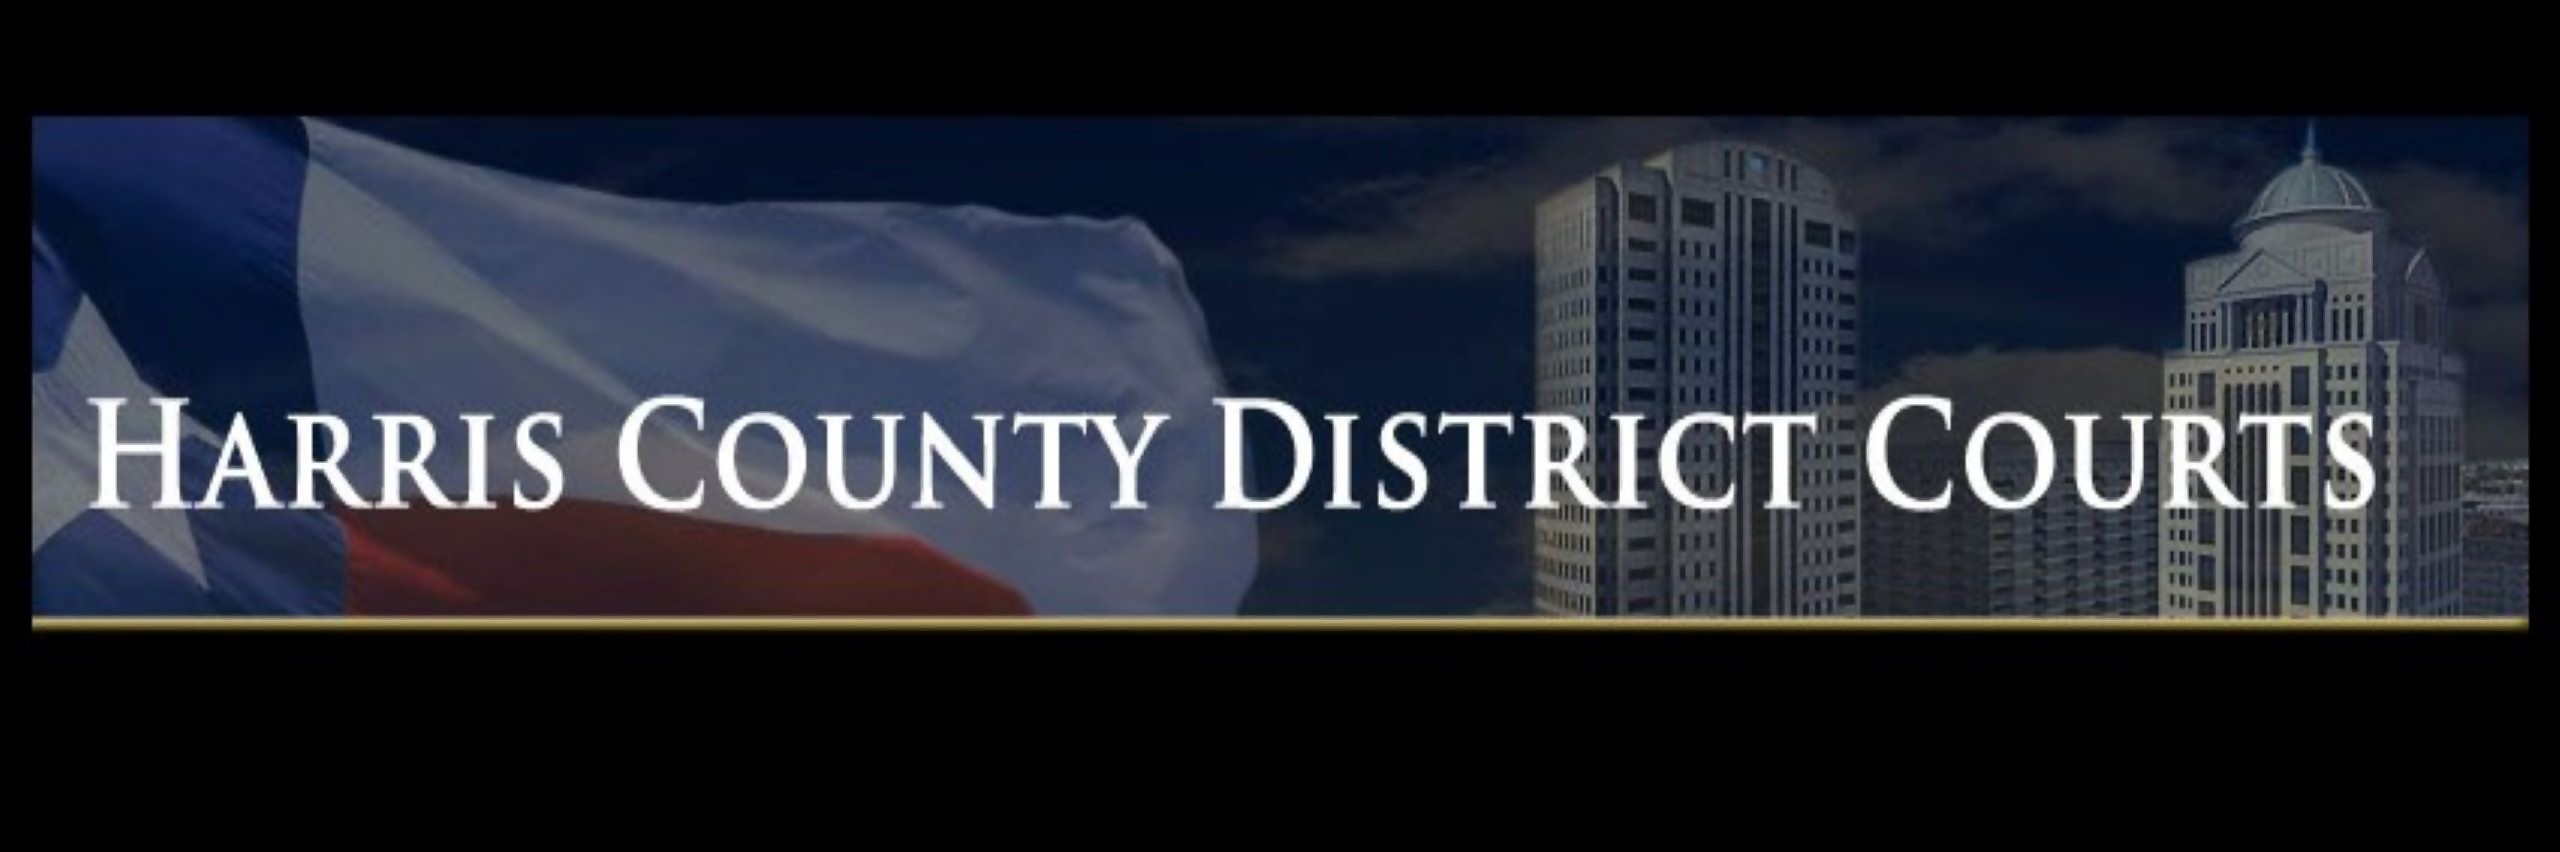 Harris County District Courts